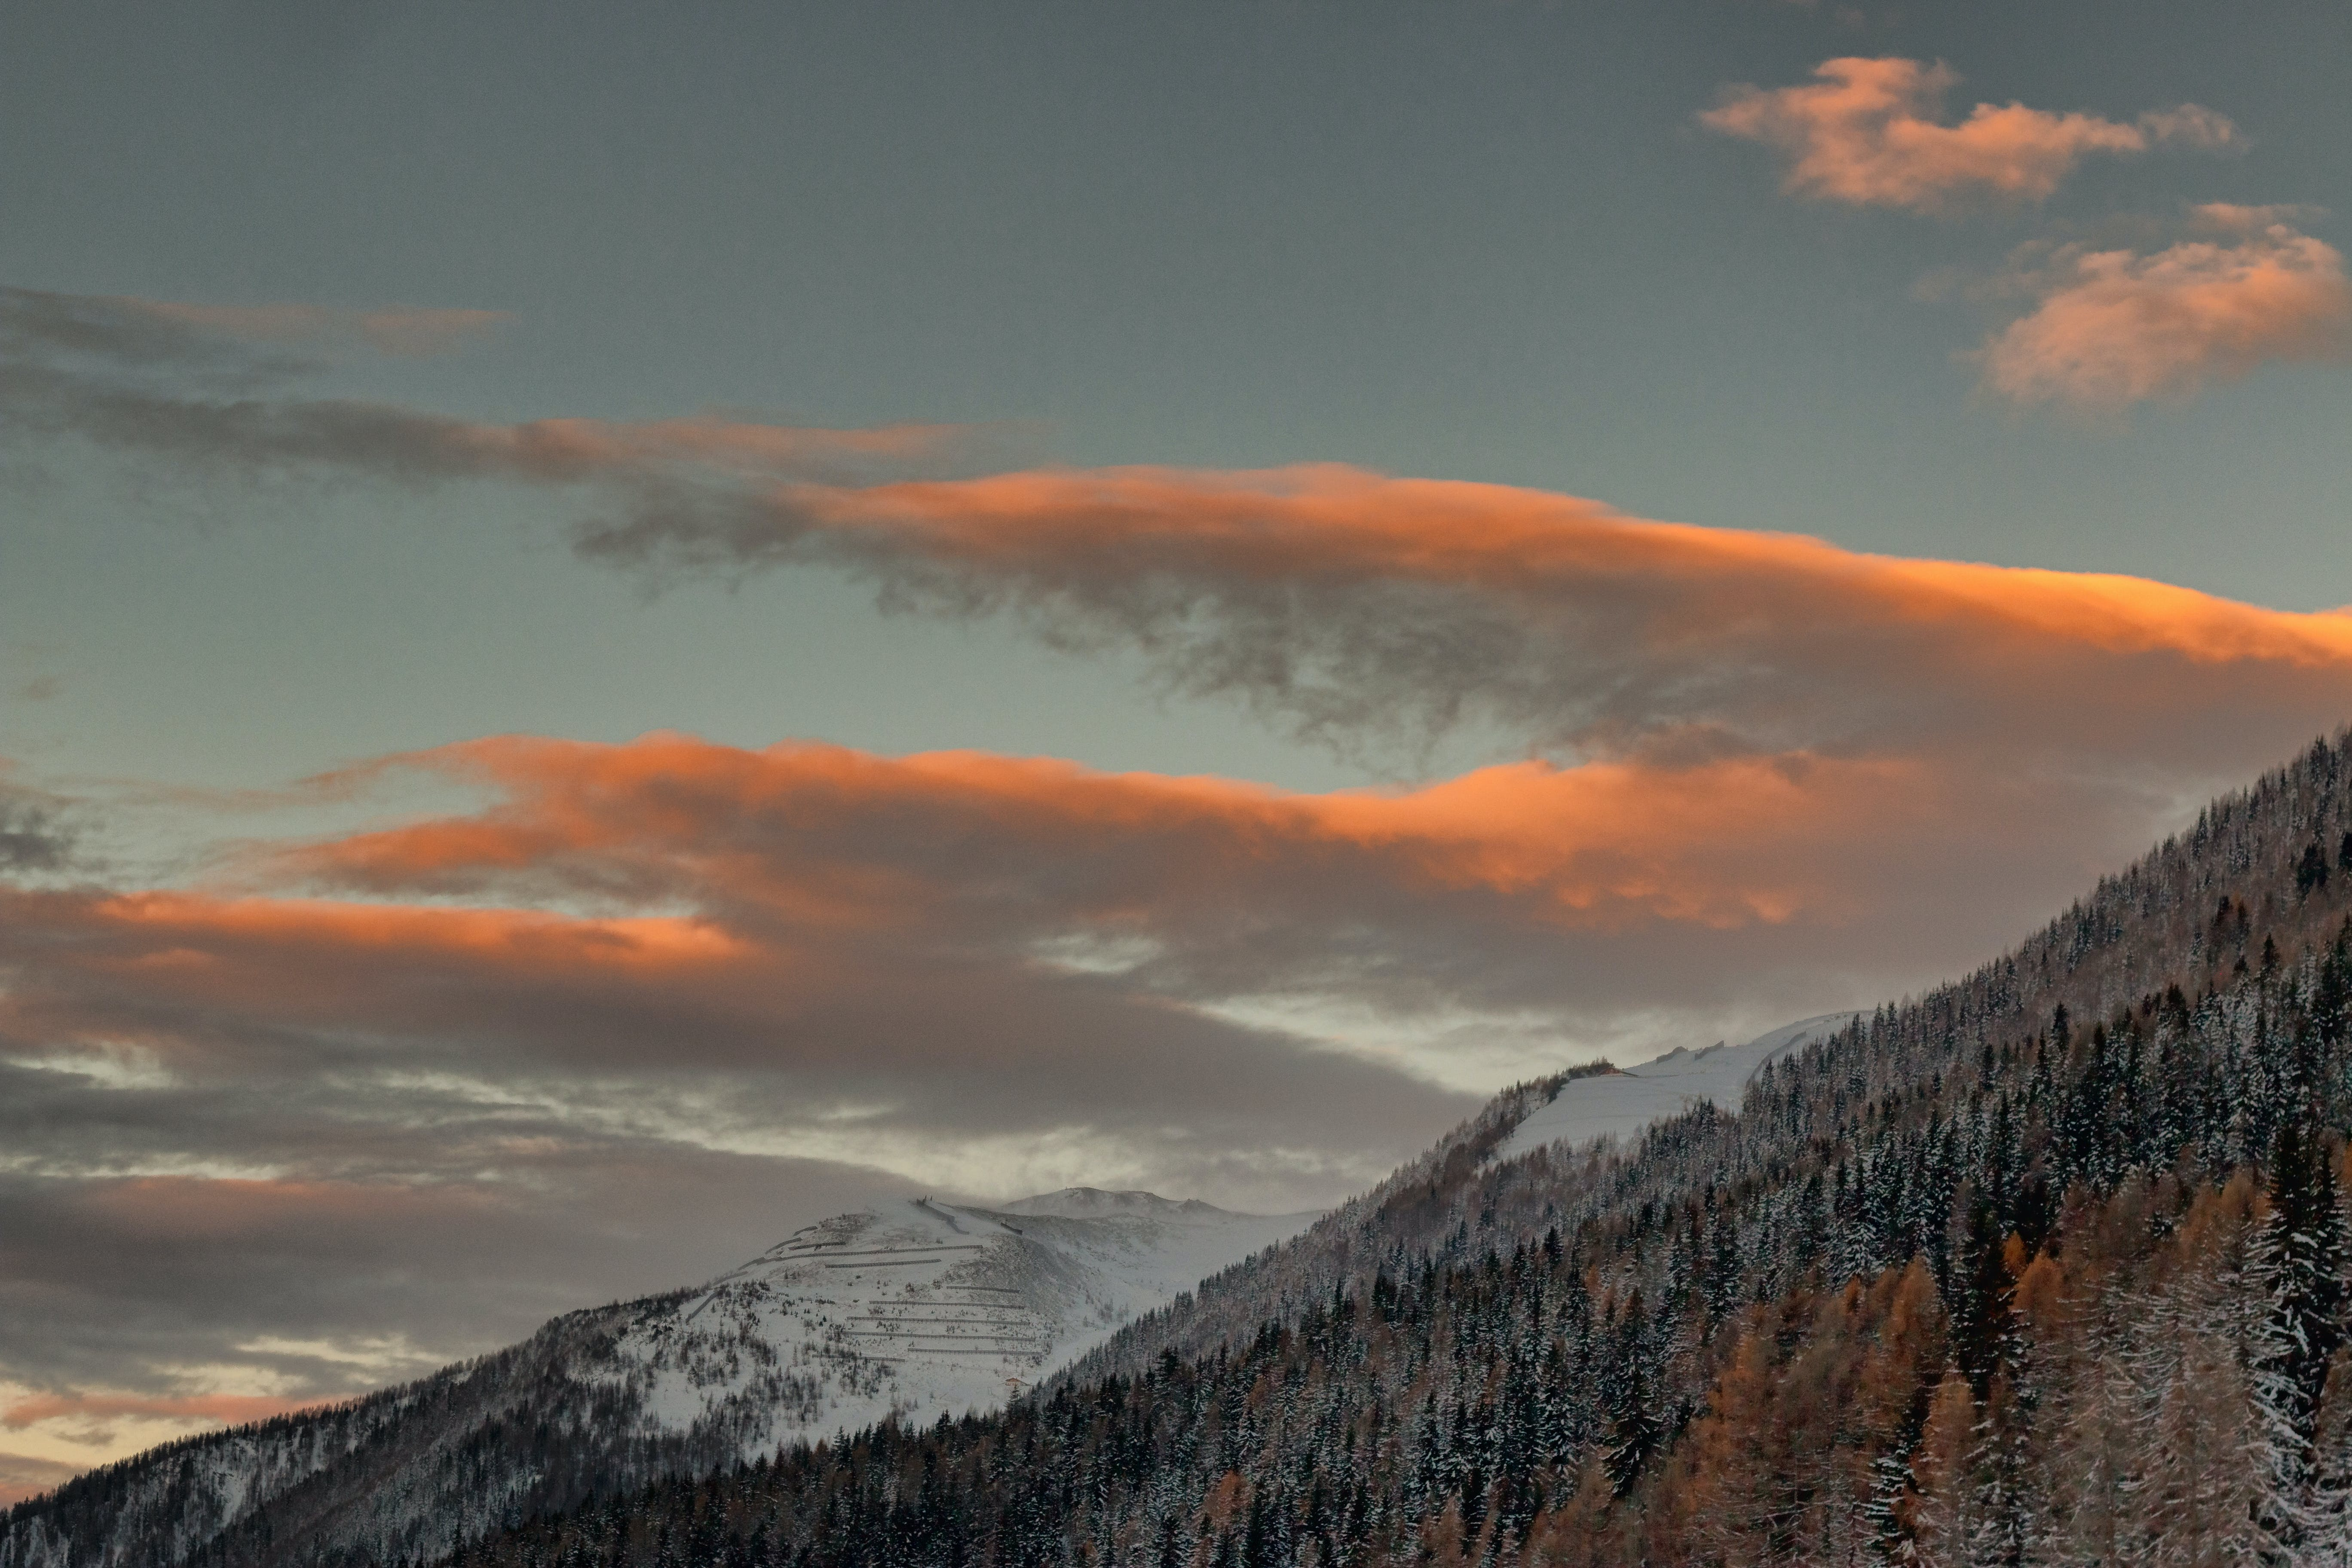 A View of Snowy Mountains Under Cloudy Sky